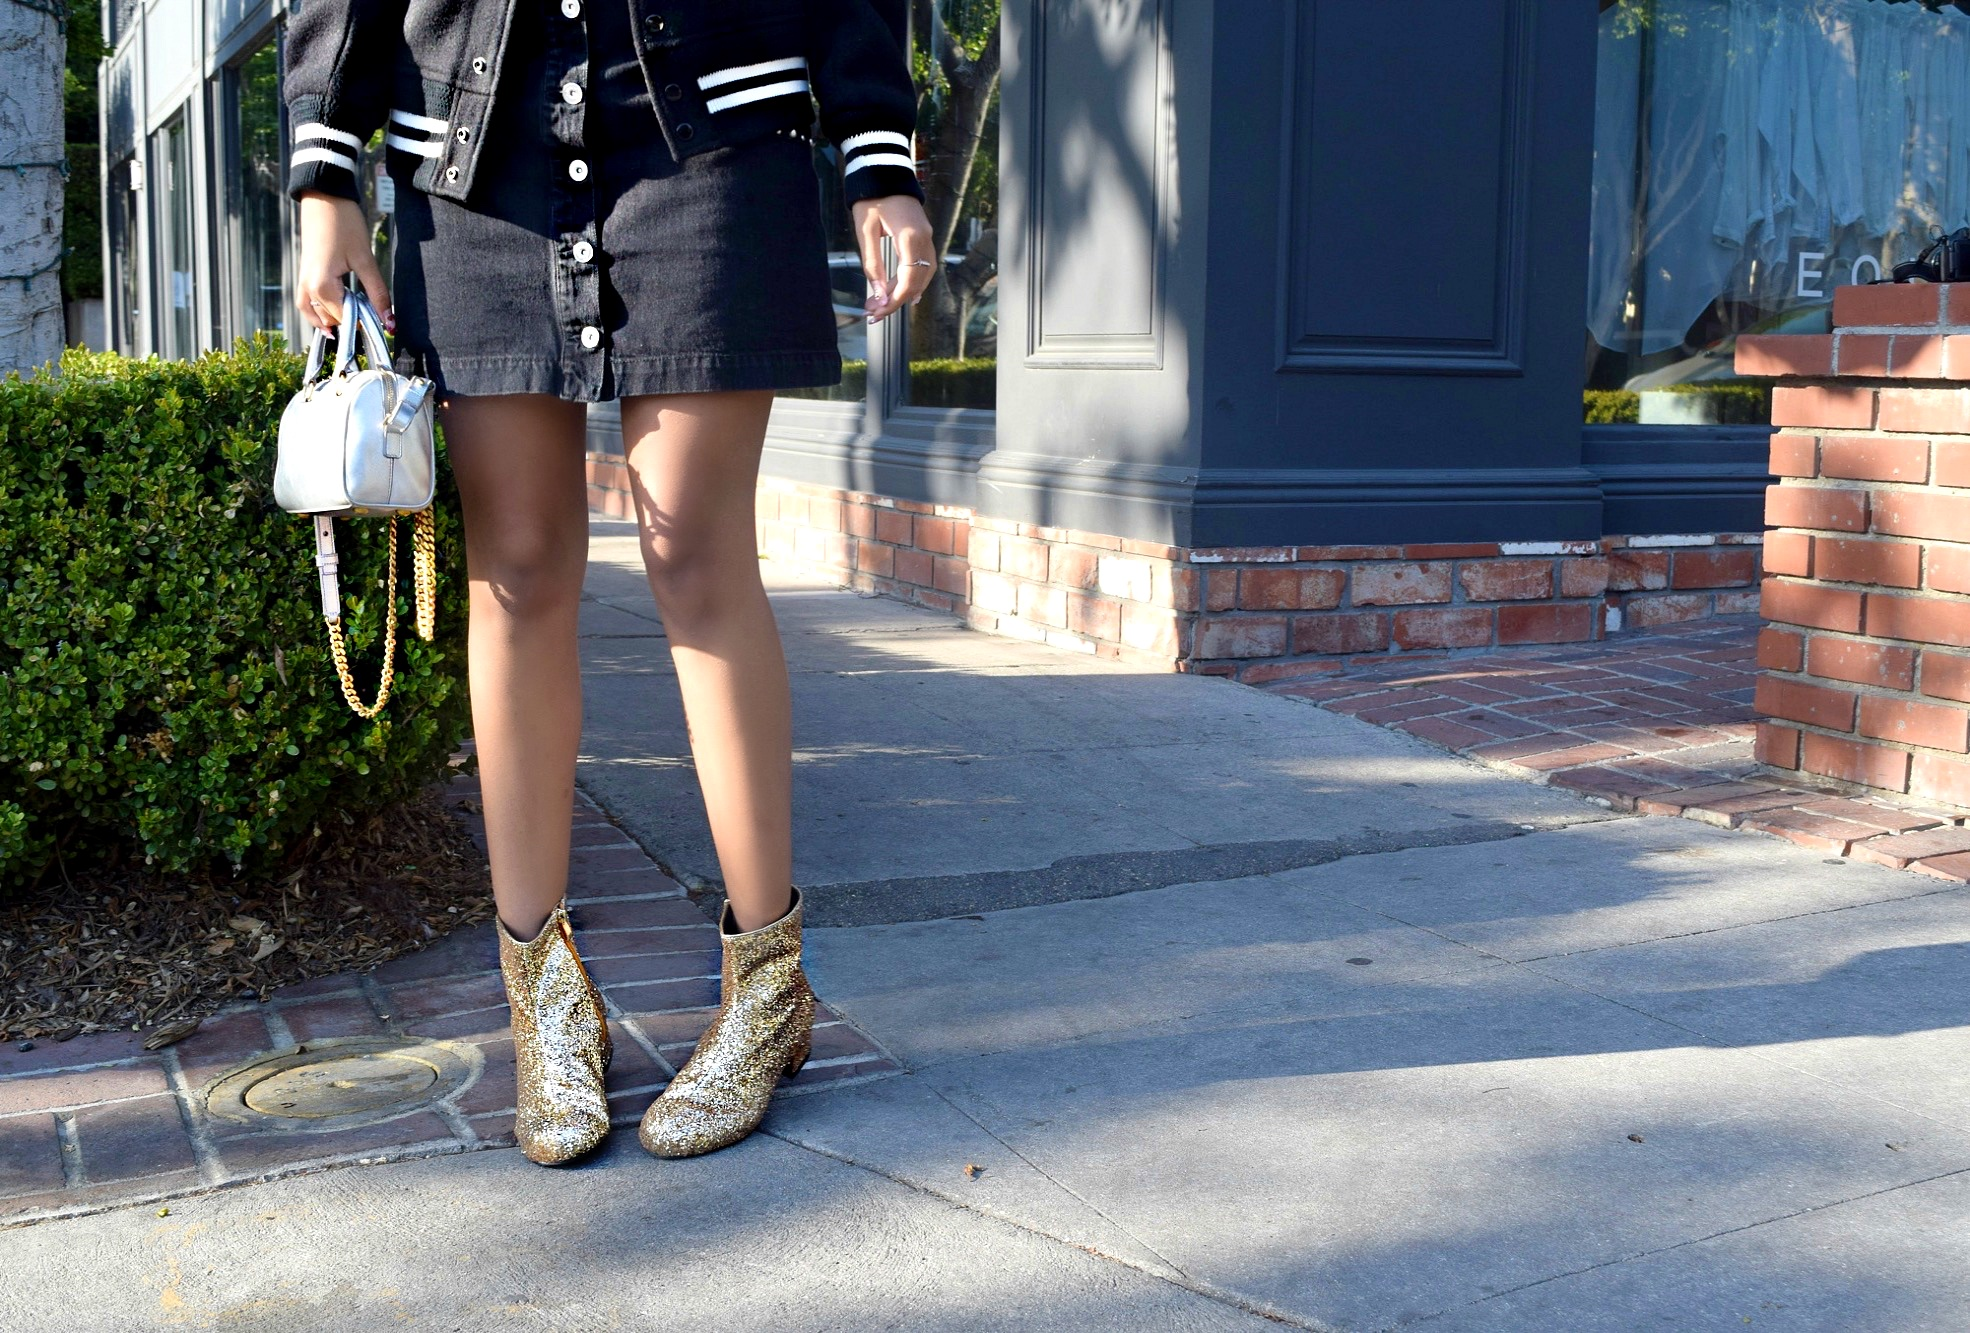 YSL Bomber Jacket & Gold Booties, Los Angeles Spring/Summer Street Style: To Style, With Love